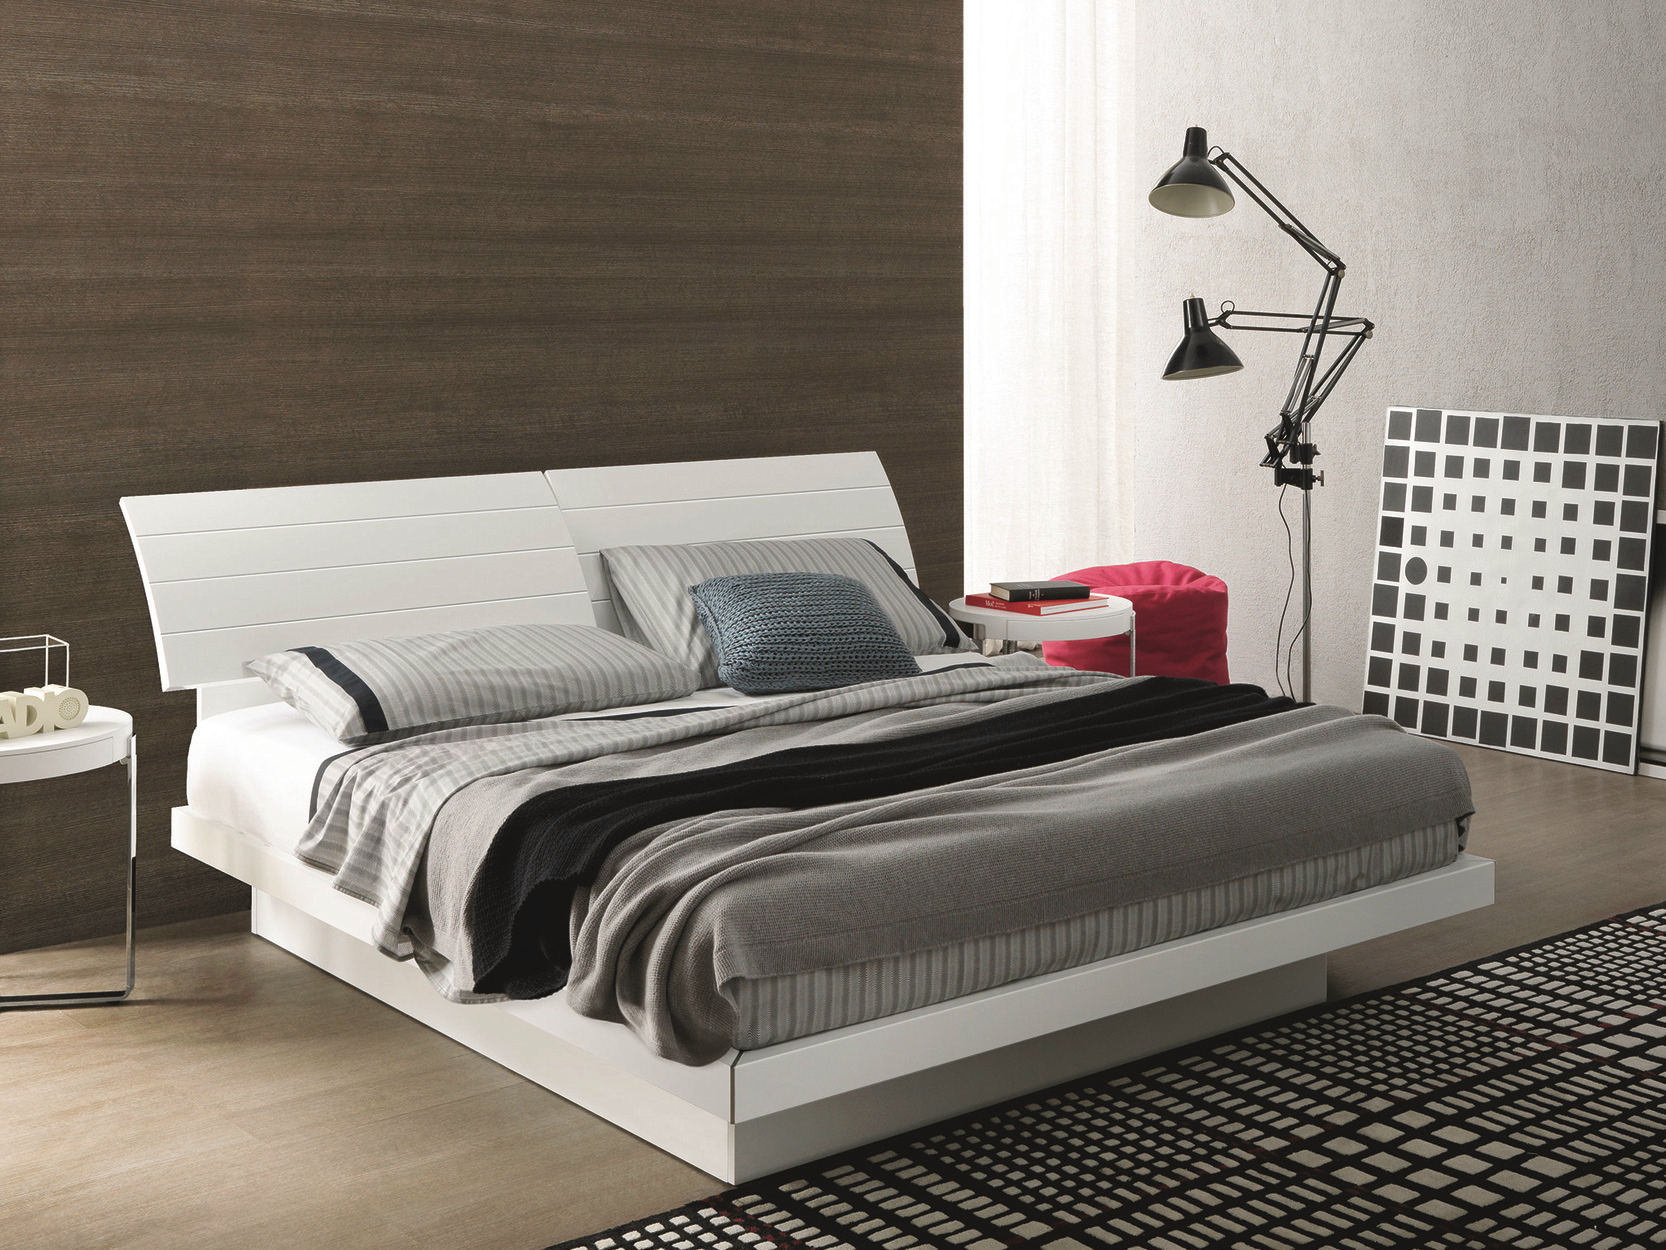 Giorgia storage bed by misuraemme design ennio arosio for Misuraemme bed